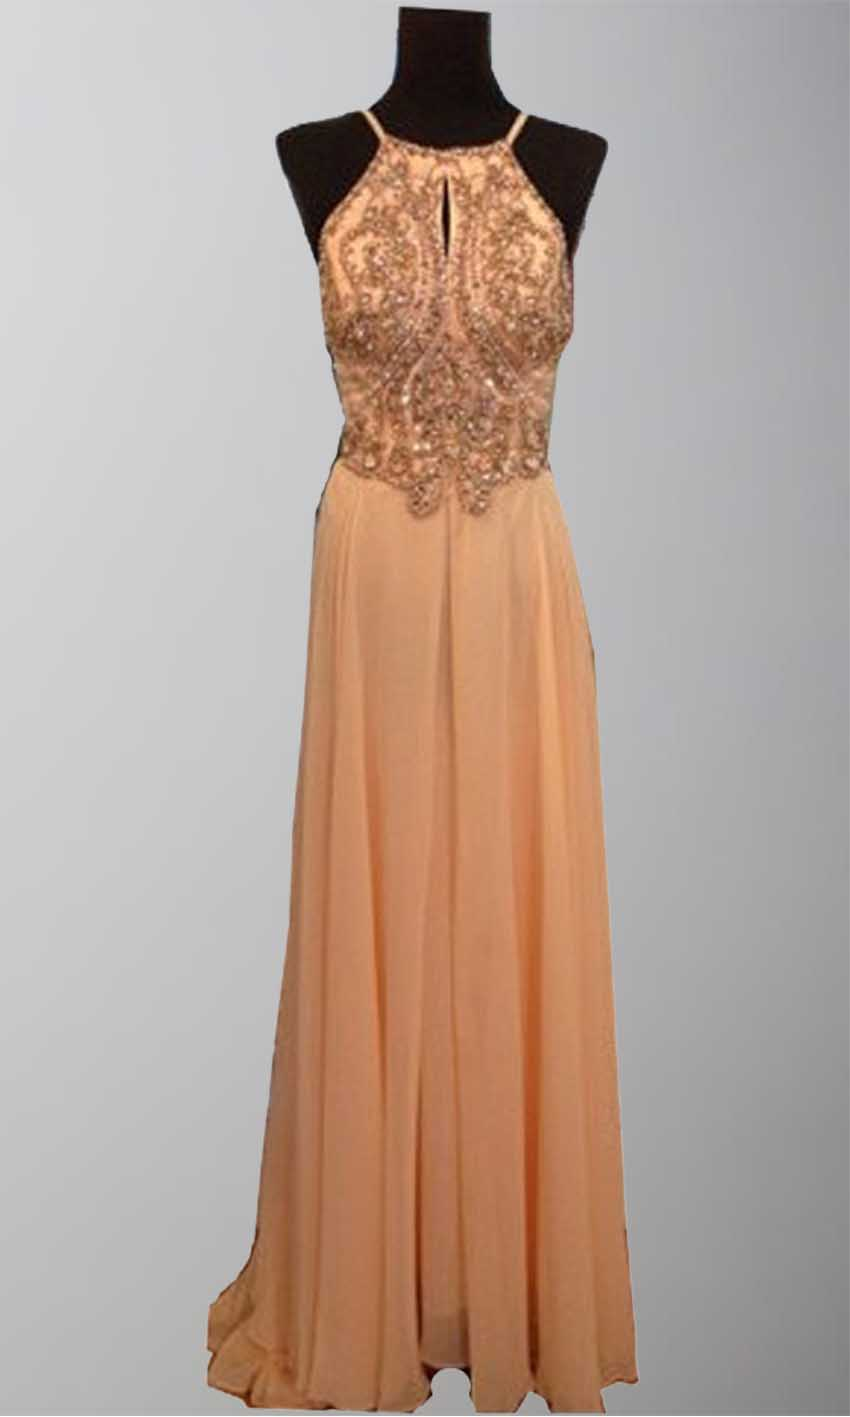 Sexy Open Back Beading Belly Band Long Prom Dresses KSP270 [KSP270] - £105.00 : Cheap Prom Dresses Uk, Bridesmaid Dresses, 2014 Prom & Evening Dresses, Look for cheap elegant prom dresses 2014, cocktail gowns, or dresses for special occasions? kissprom.co.uk offers various bridesmaid dresses, evening dress, free shipping to UK etc.